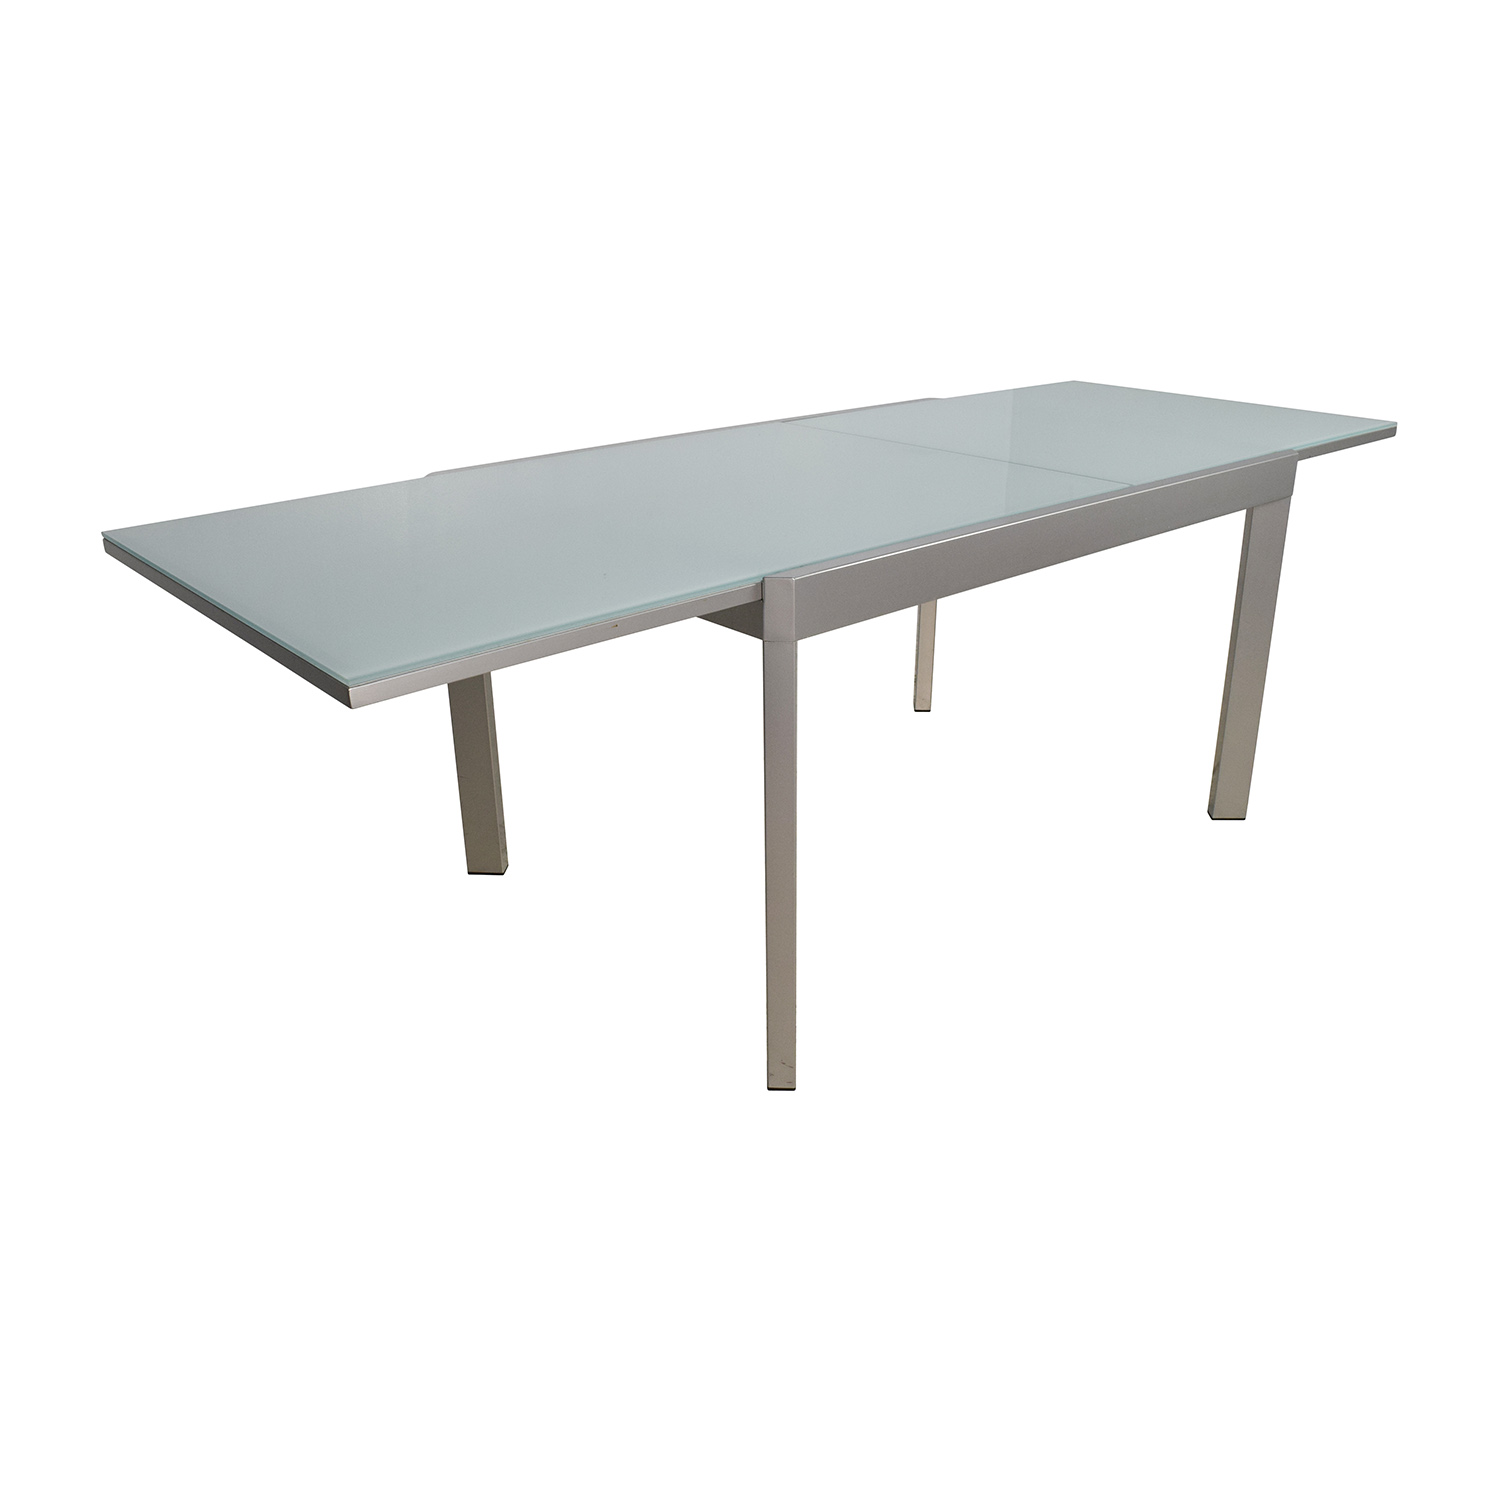 ... Buy Calligaris Calligaris Extendable Glass Dining Table Online ...